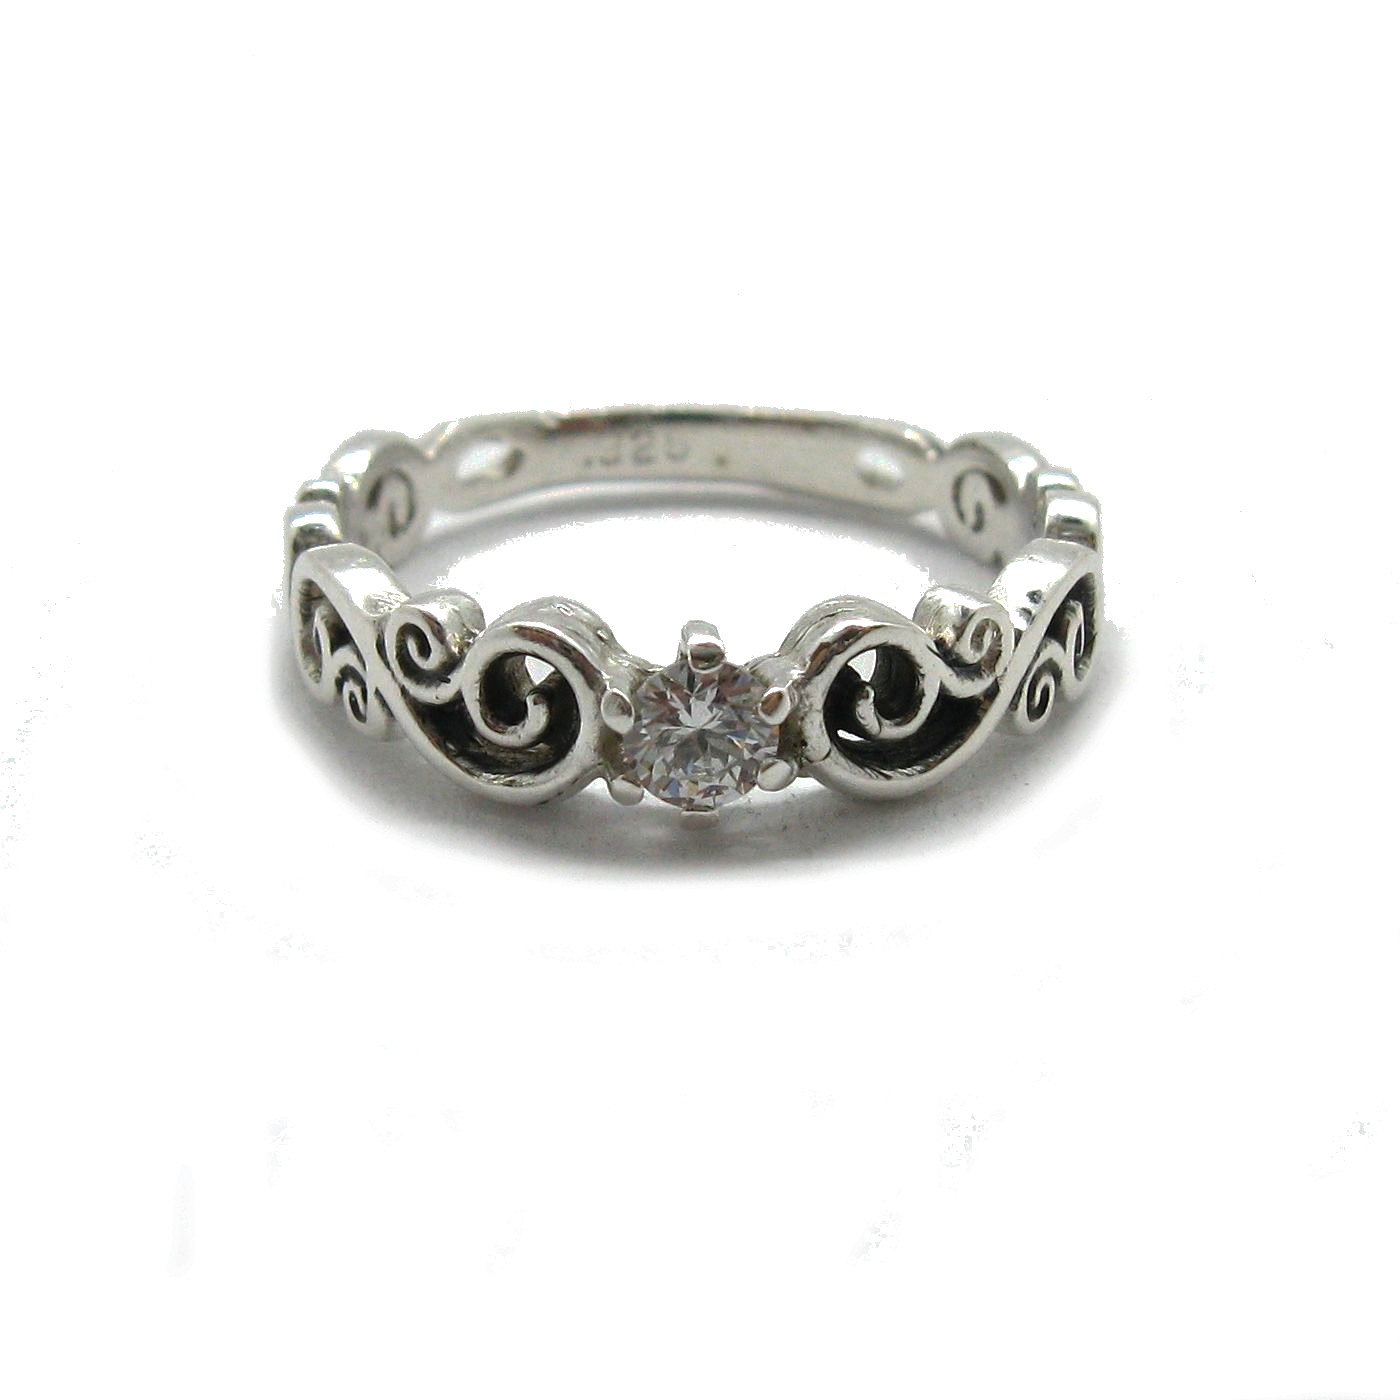 Silver ring - R001828